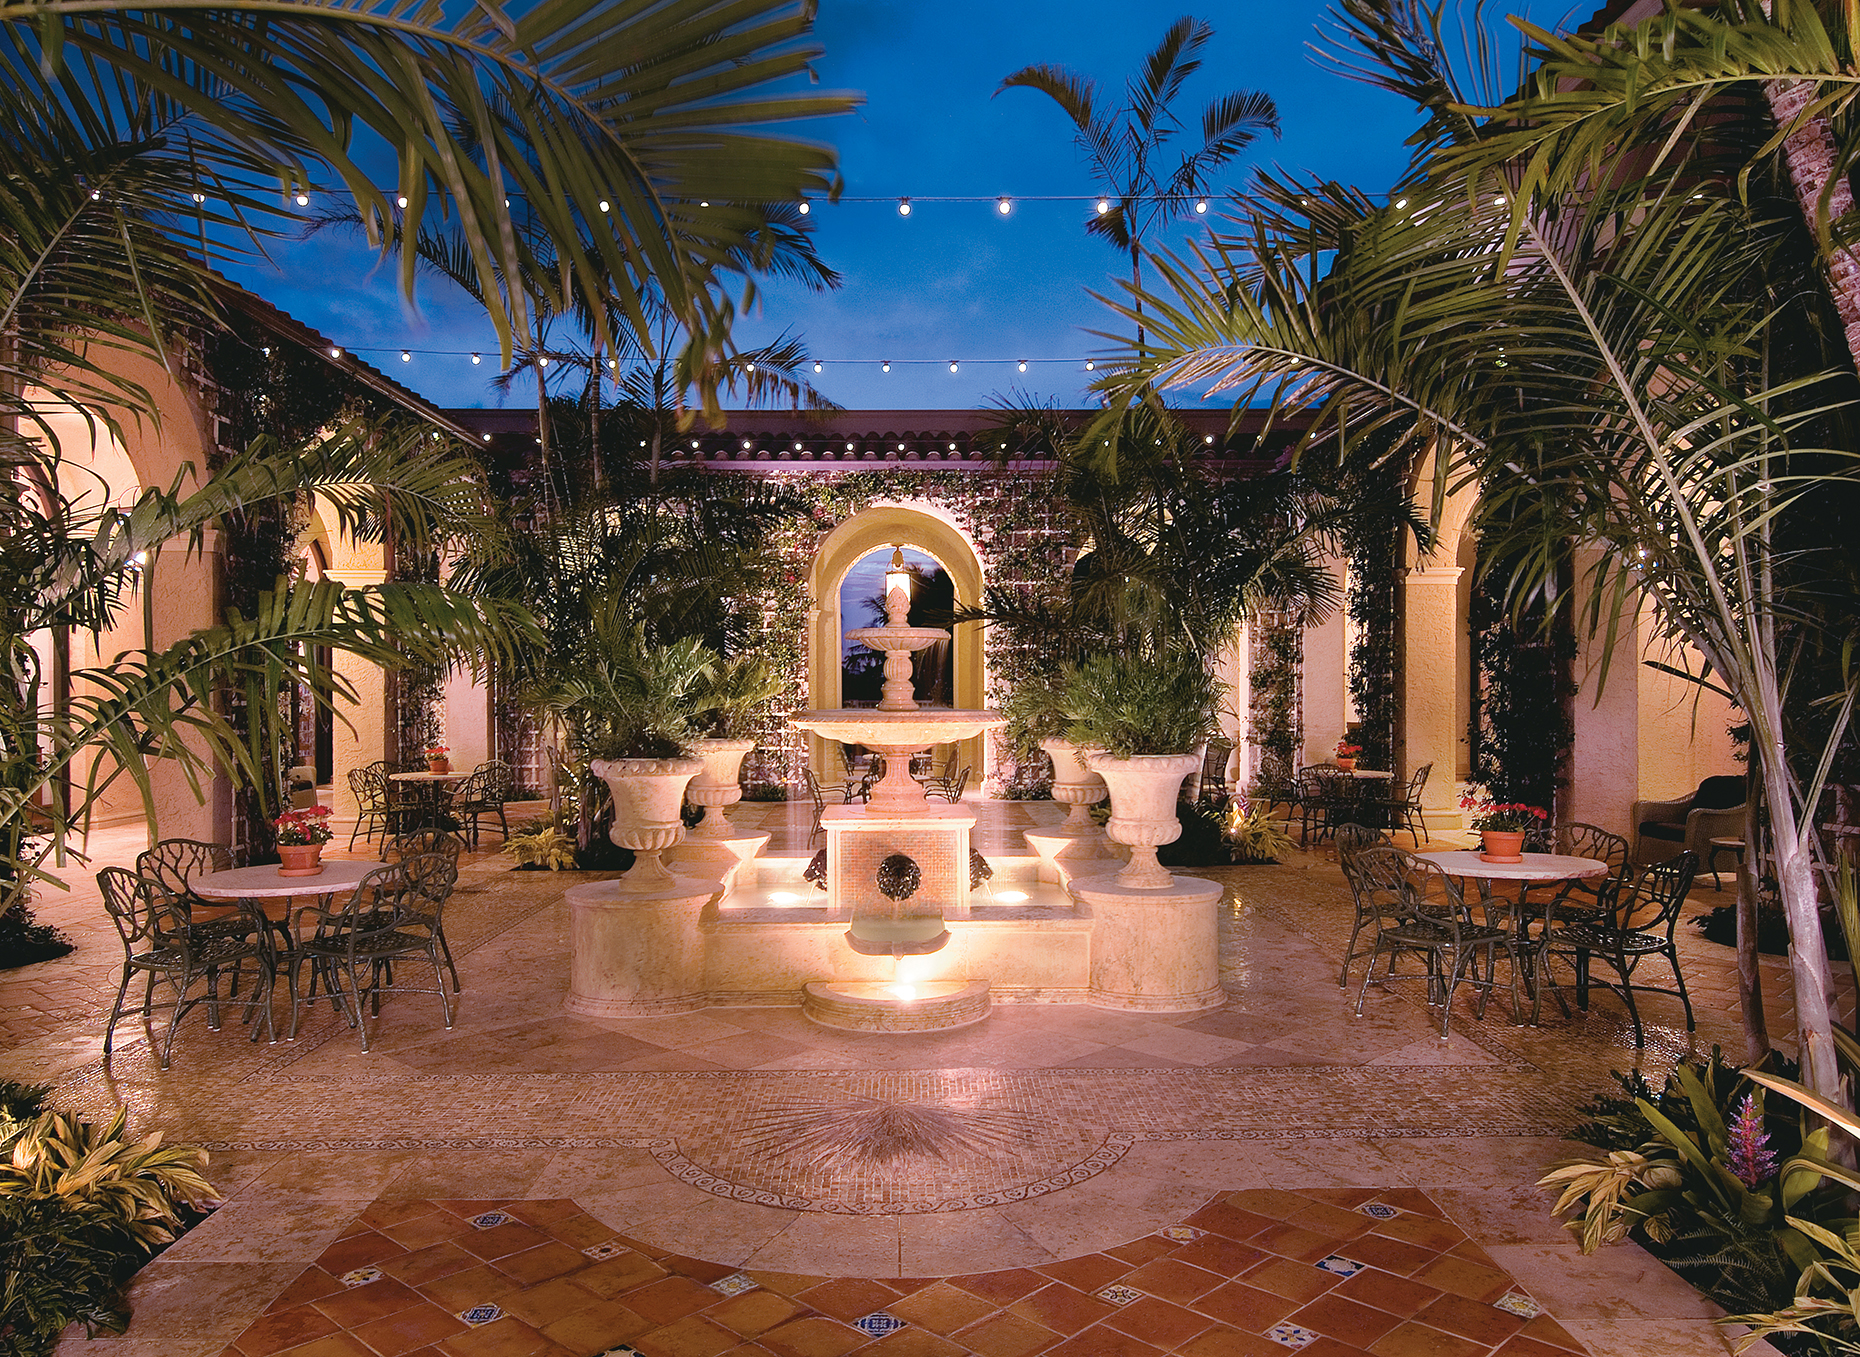 Courtyard at The Breakers (Image: The Breakers)